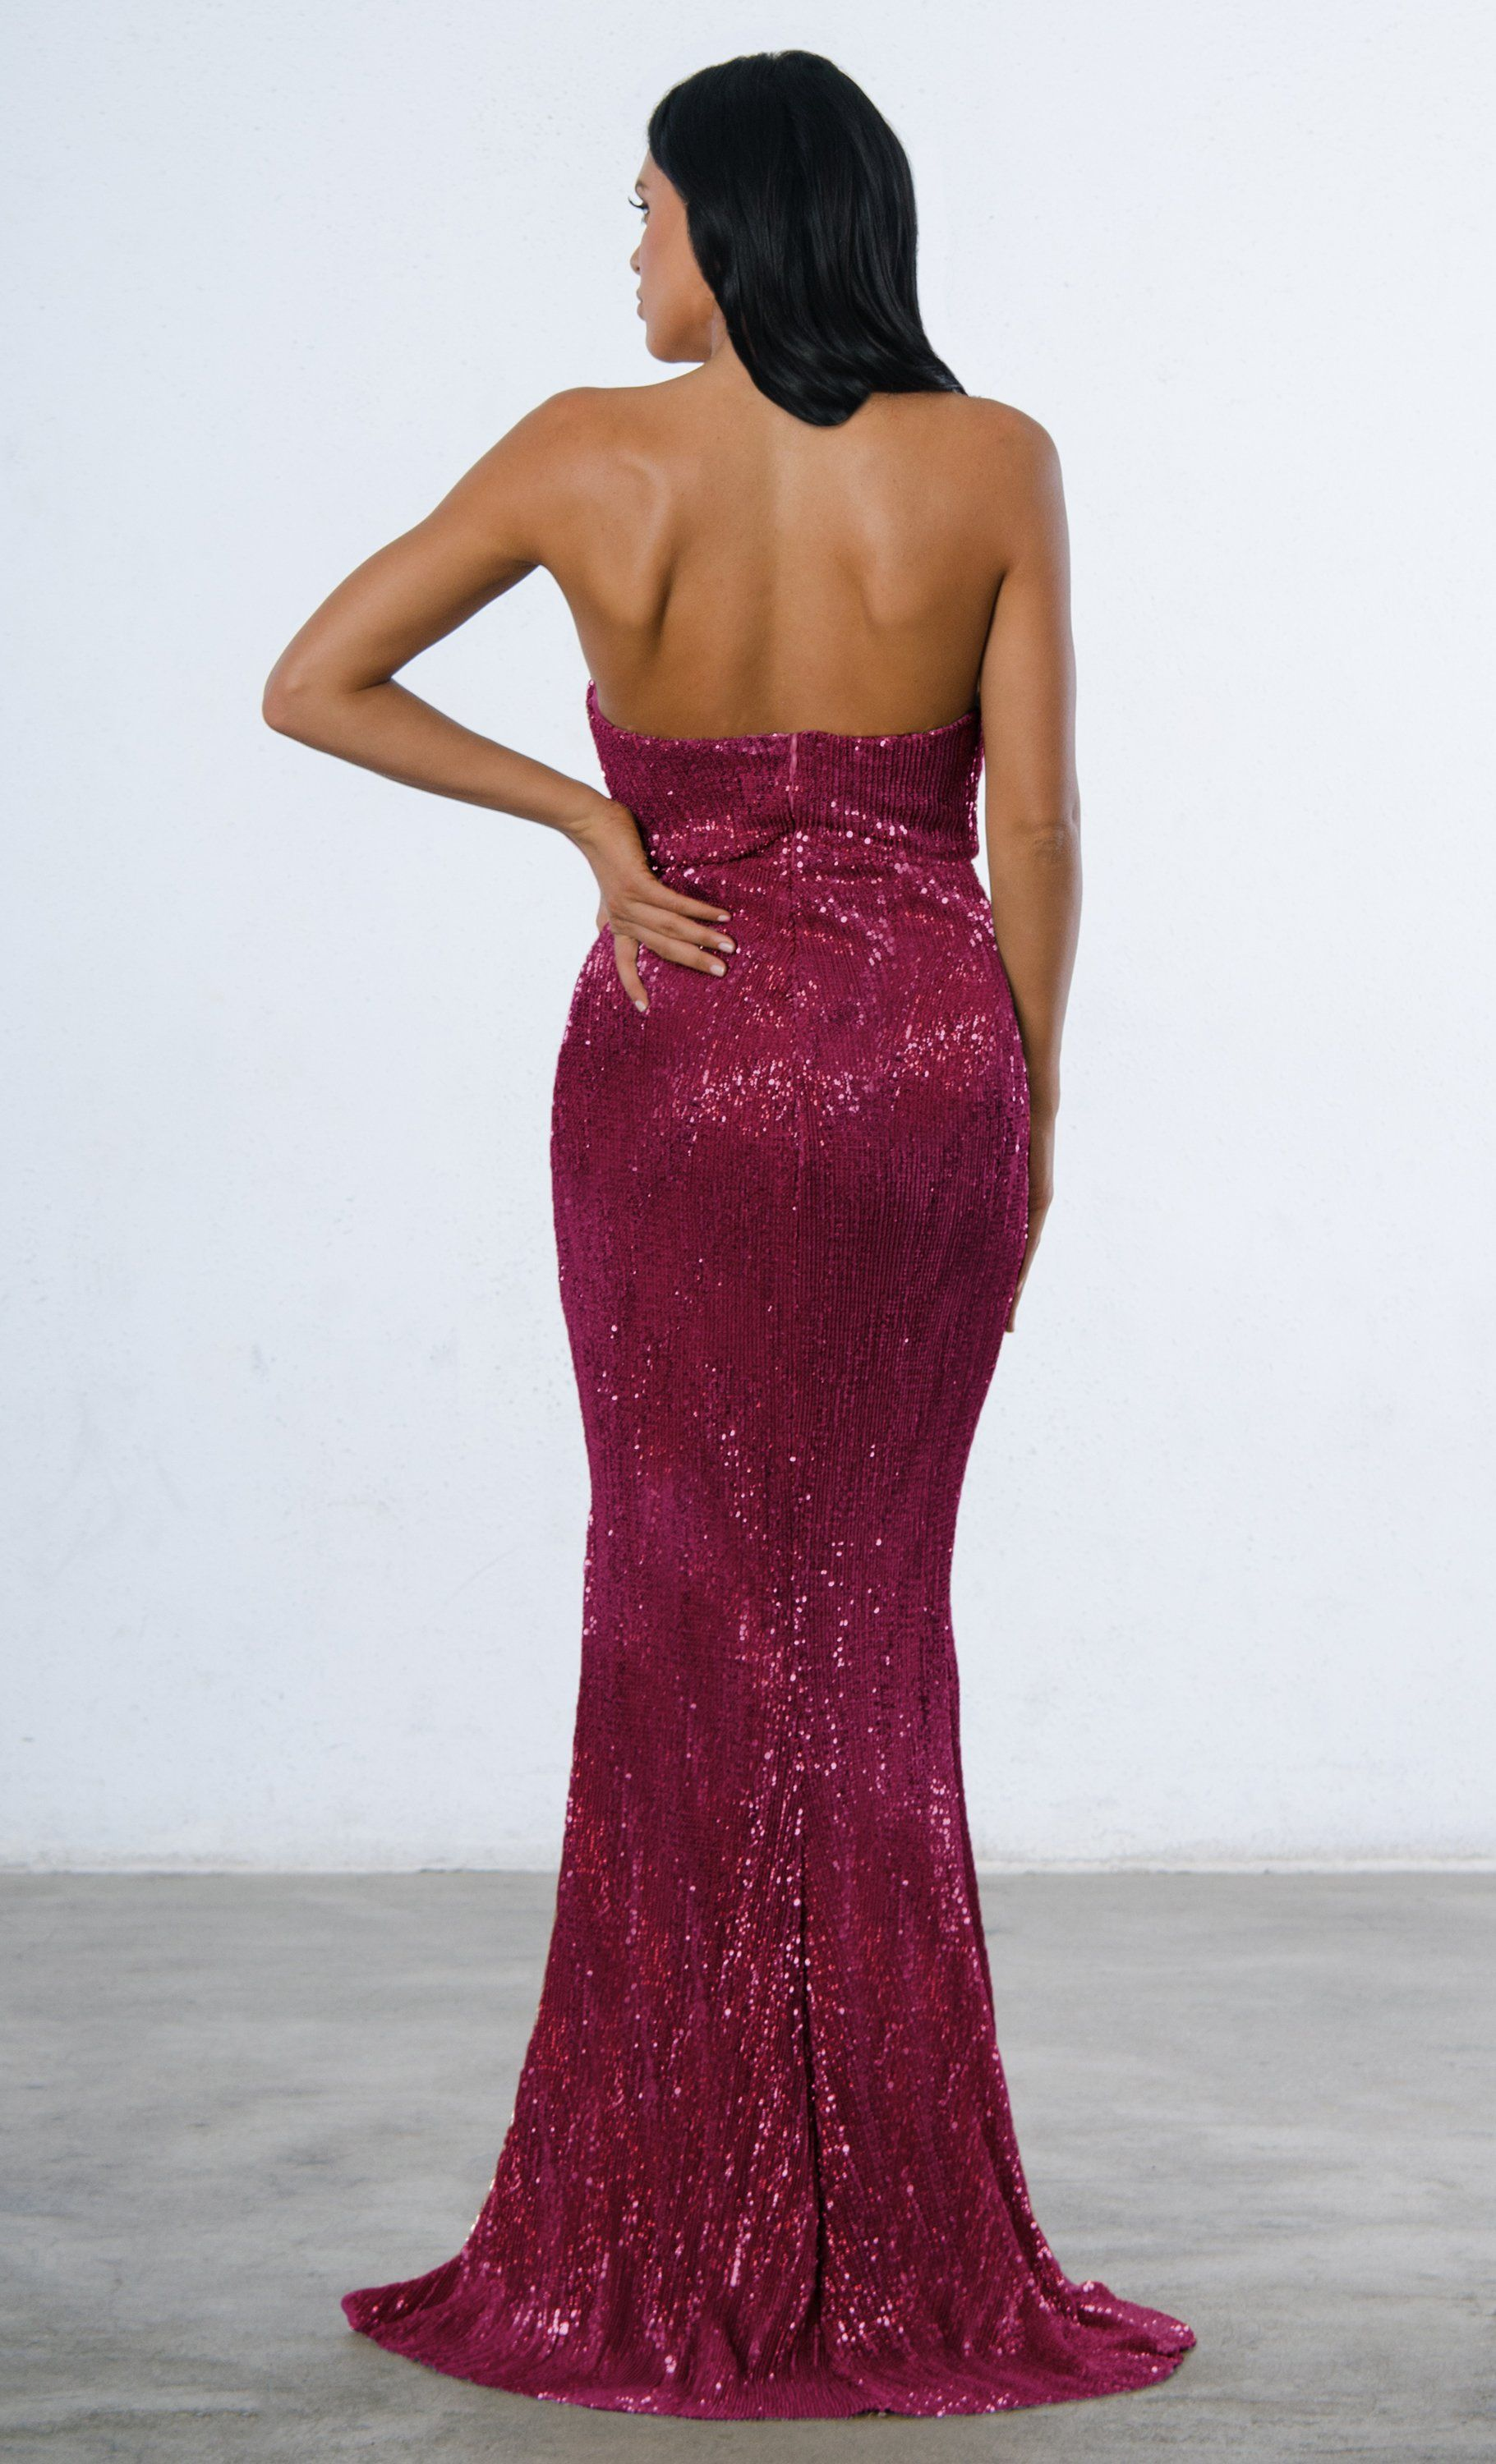 c69c307f327f Indie XO Show Me Some Love Burgundy Wine Red Sequin Strapless Sweetheart  Neck High Slit Fishtail Maxi Dress - 5 Colors Available